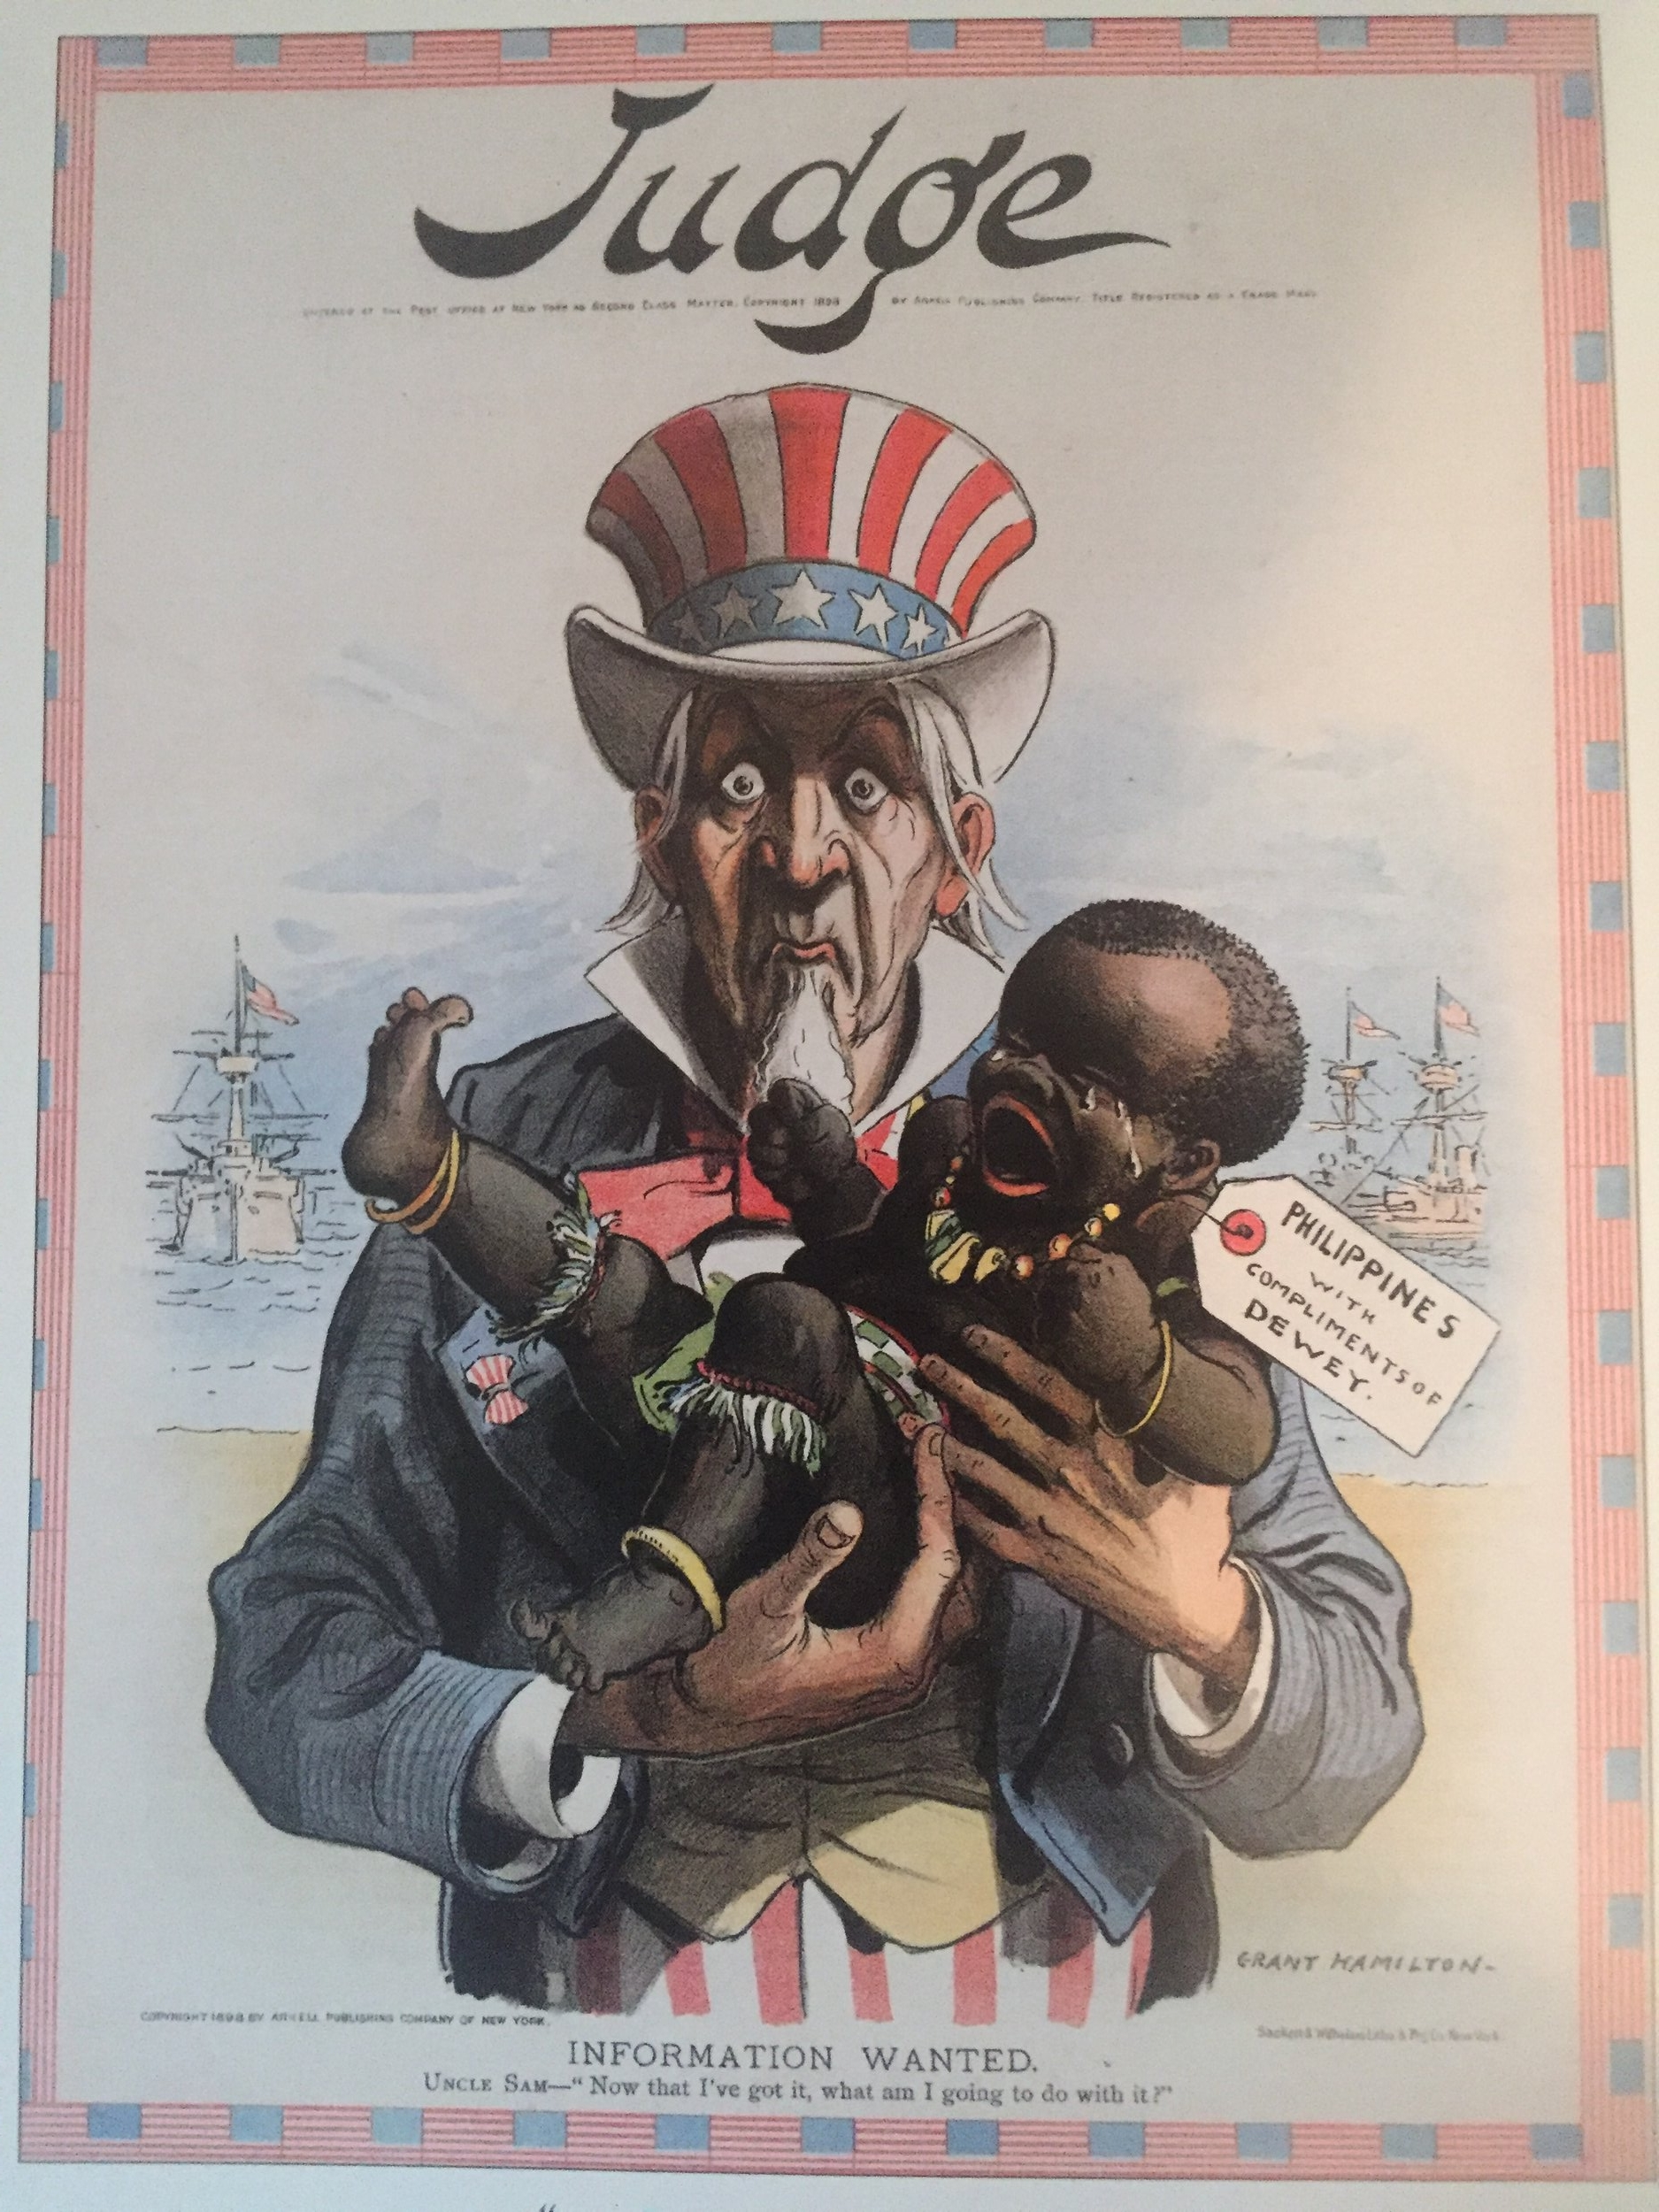 """""""INFORMATION WANTED: Uncle Sam - 'Now that I've got it, what am I going to do with it?'"""" / Illustration by   Grant Hamilton,  Judge , June 11,1898"""